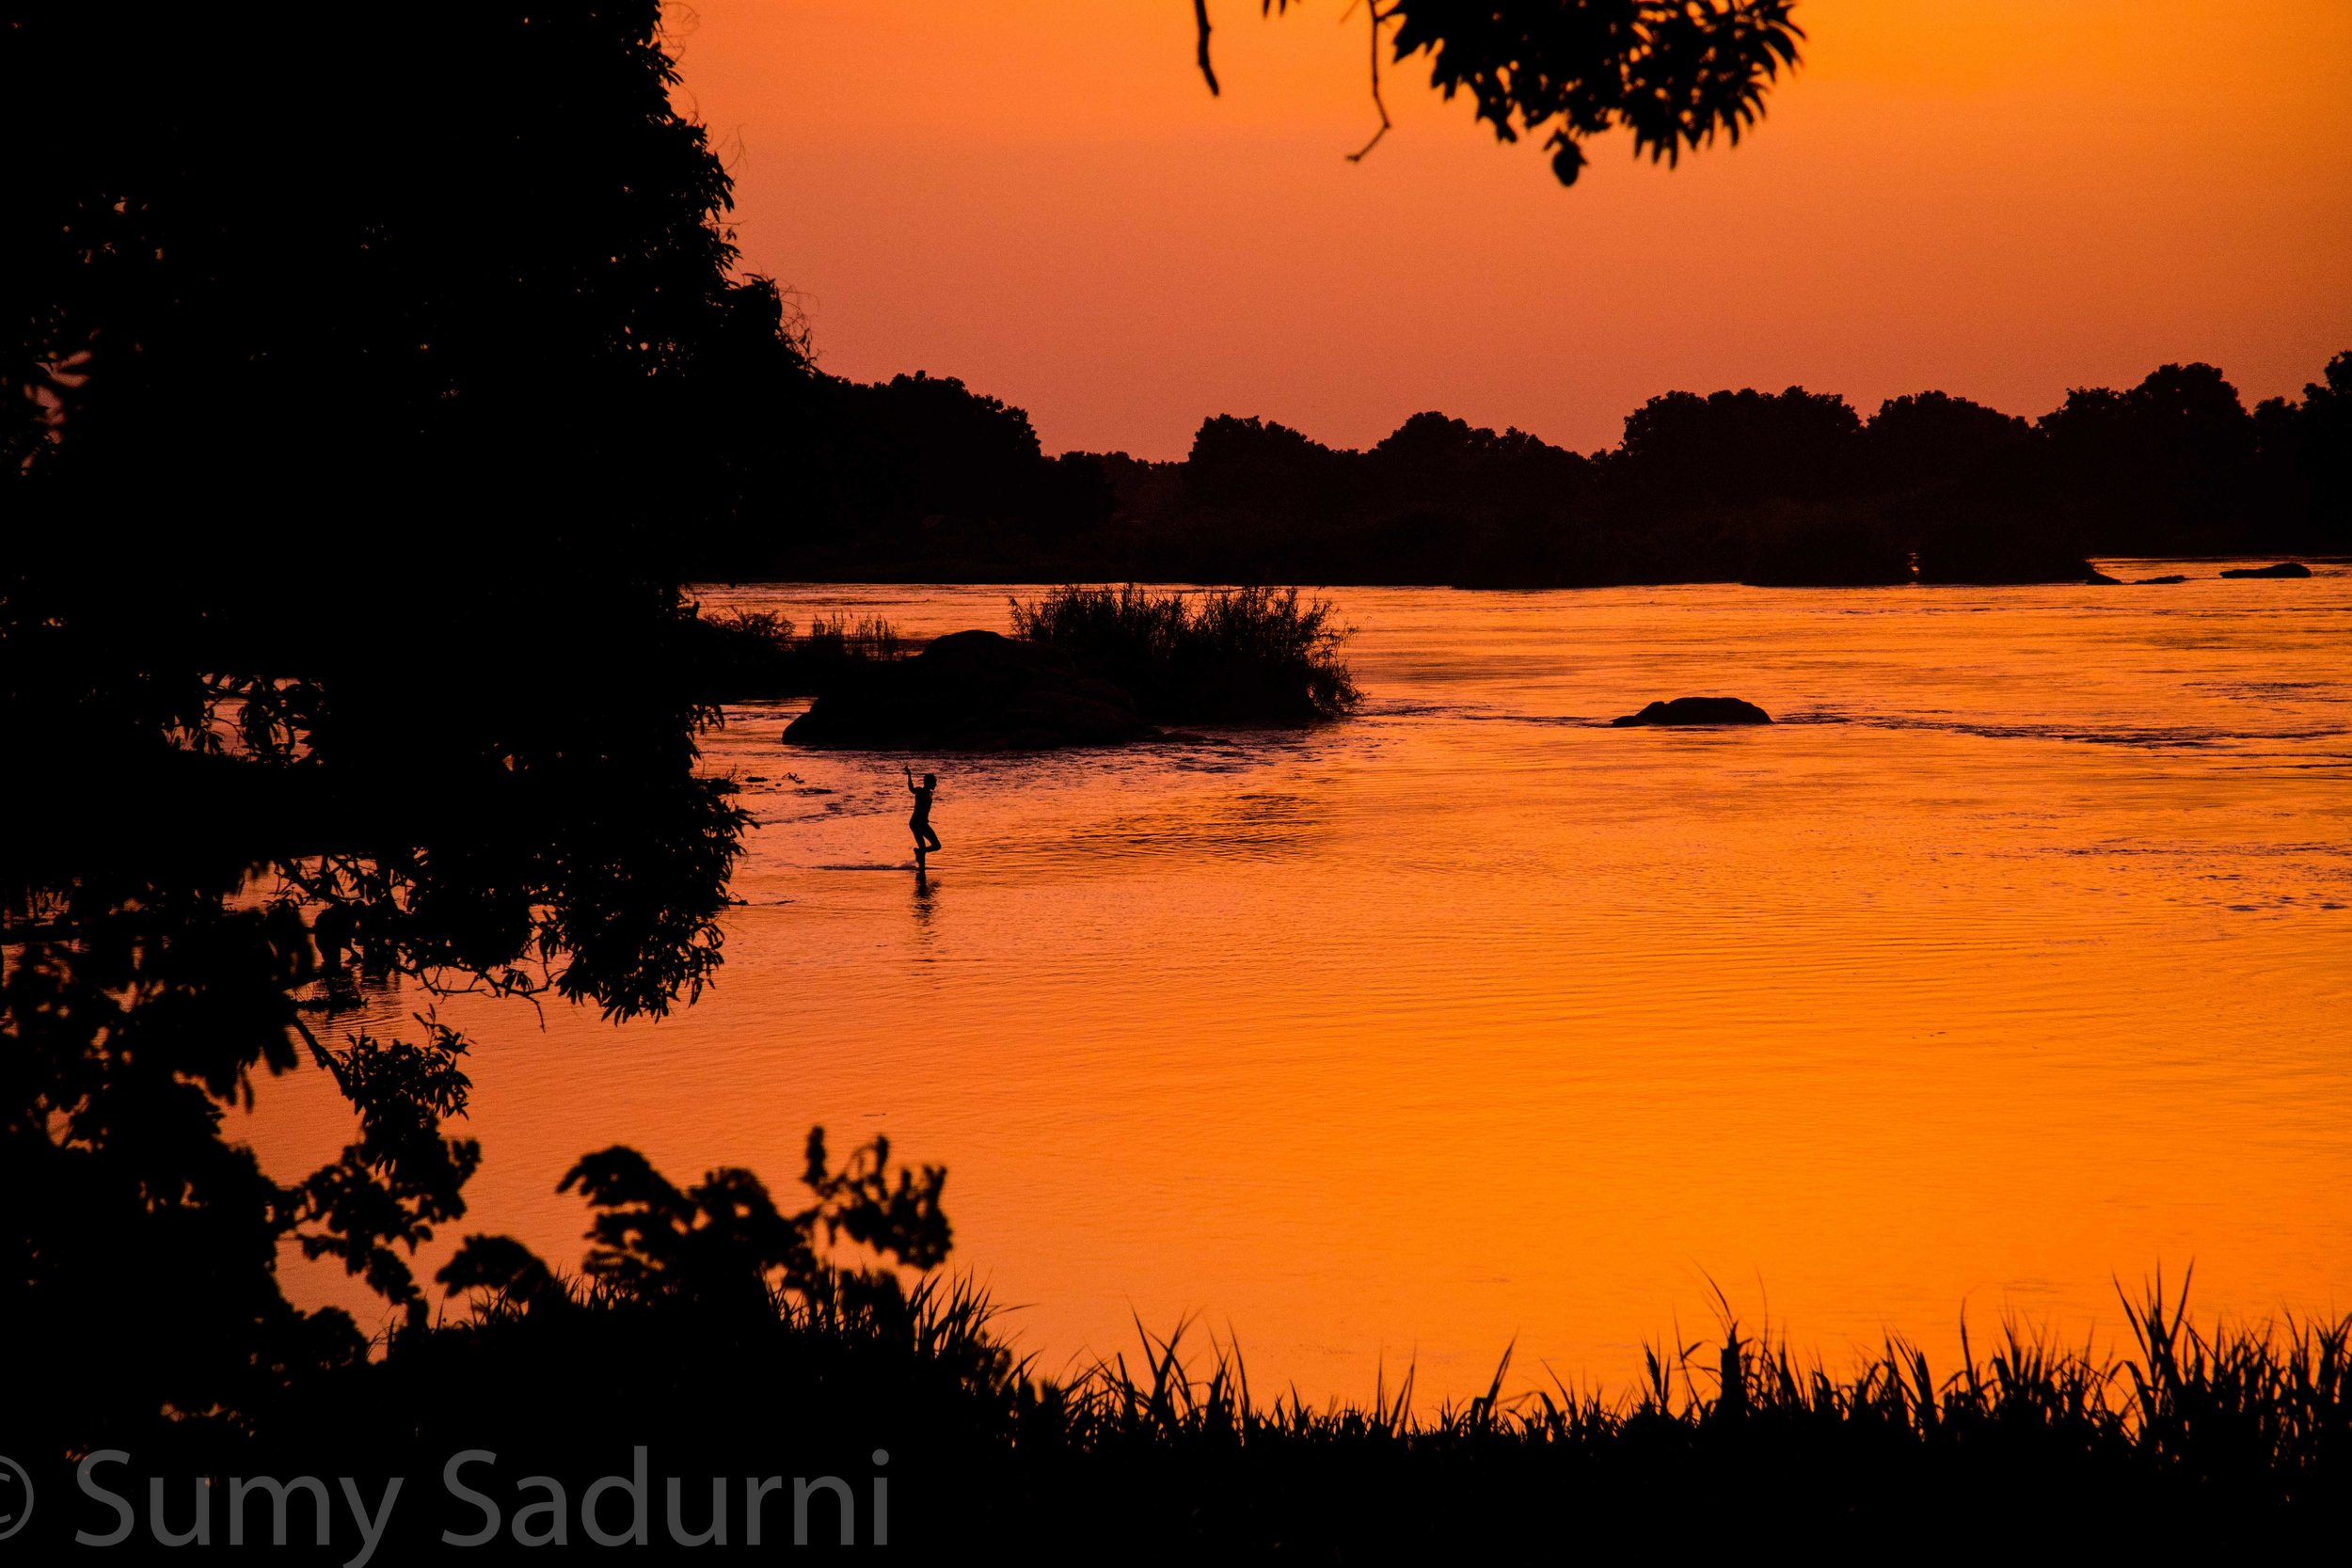 Print 15: Sunset on the Nile River, Juba, South Sudan.